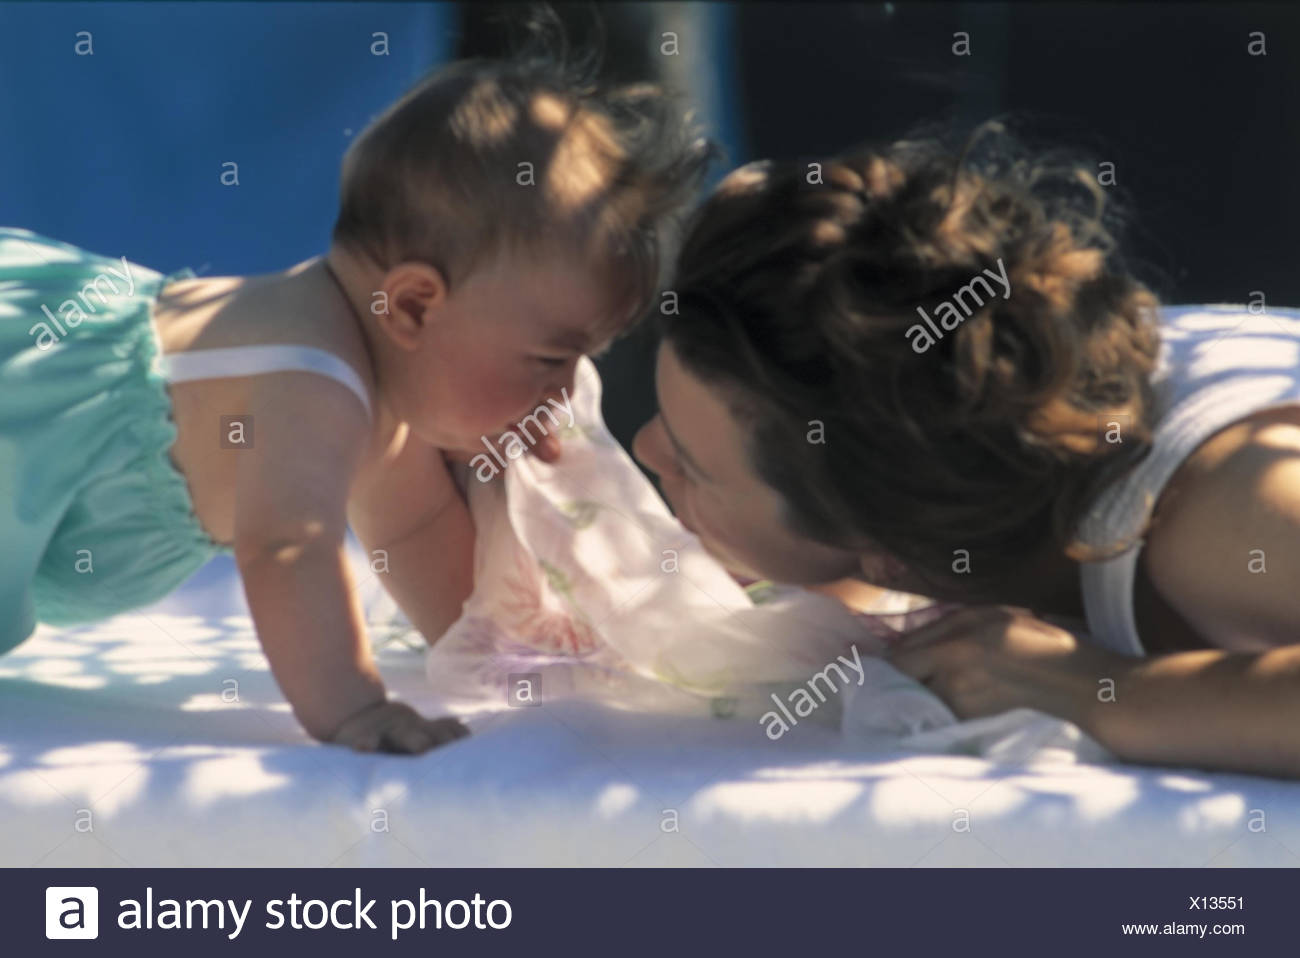 Mother, baby, eye contact, facial play, portrait outside, summer, woman, parent, young, child, cry, tearful, creep, love, affection, affectionately, comfort - Stock Image